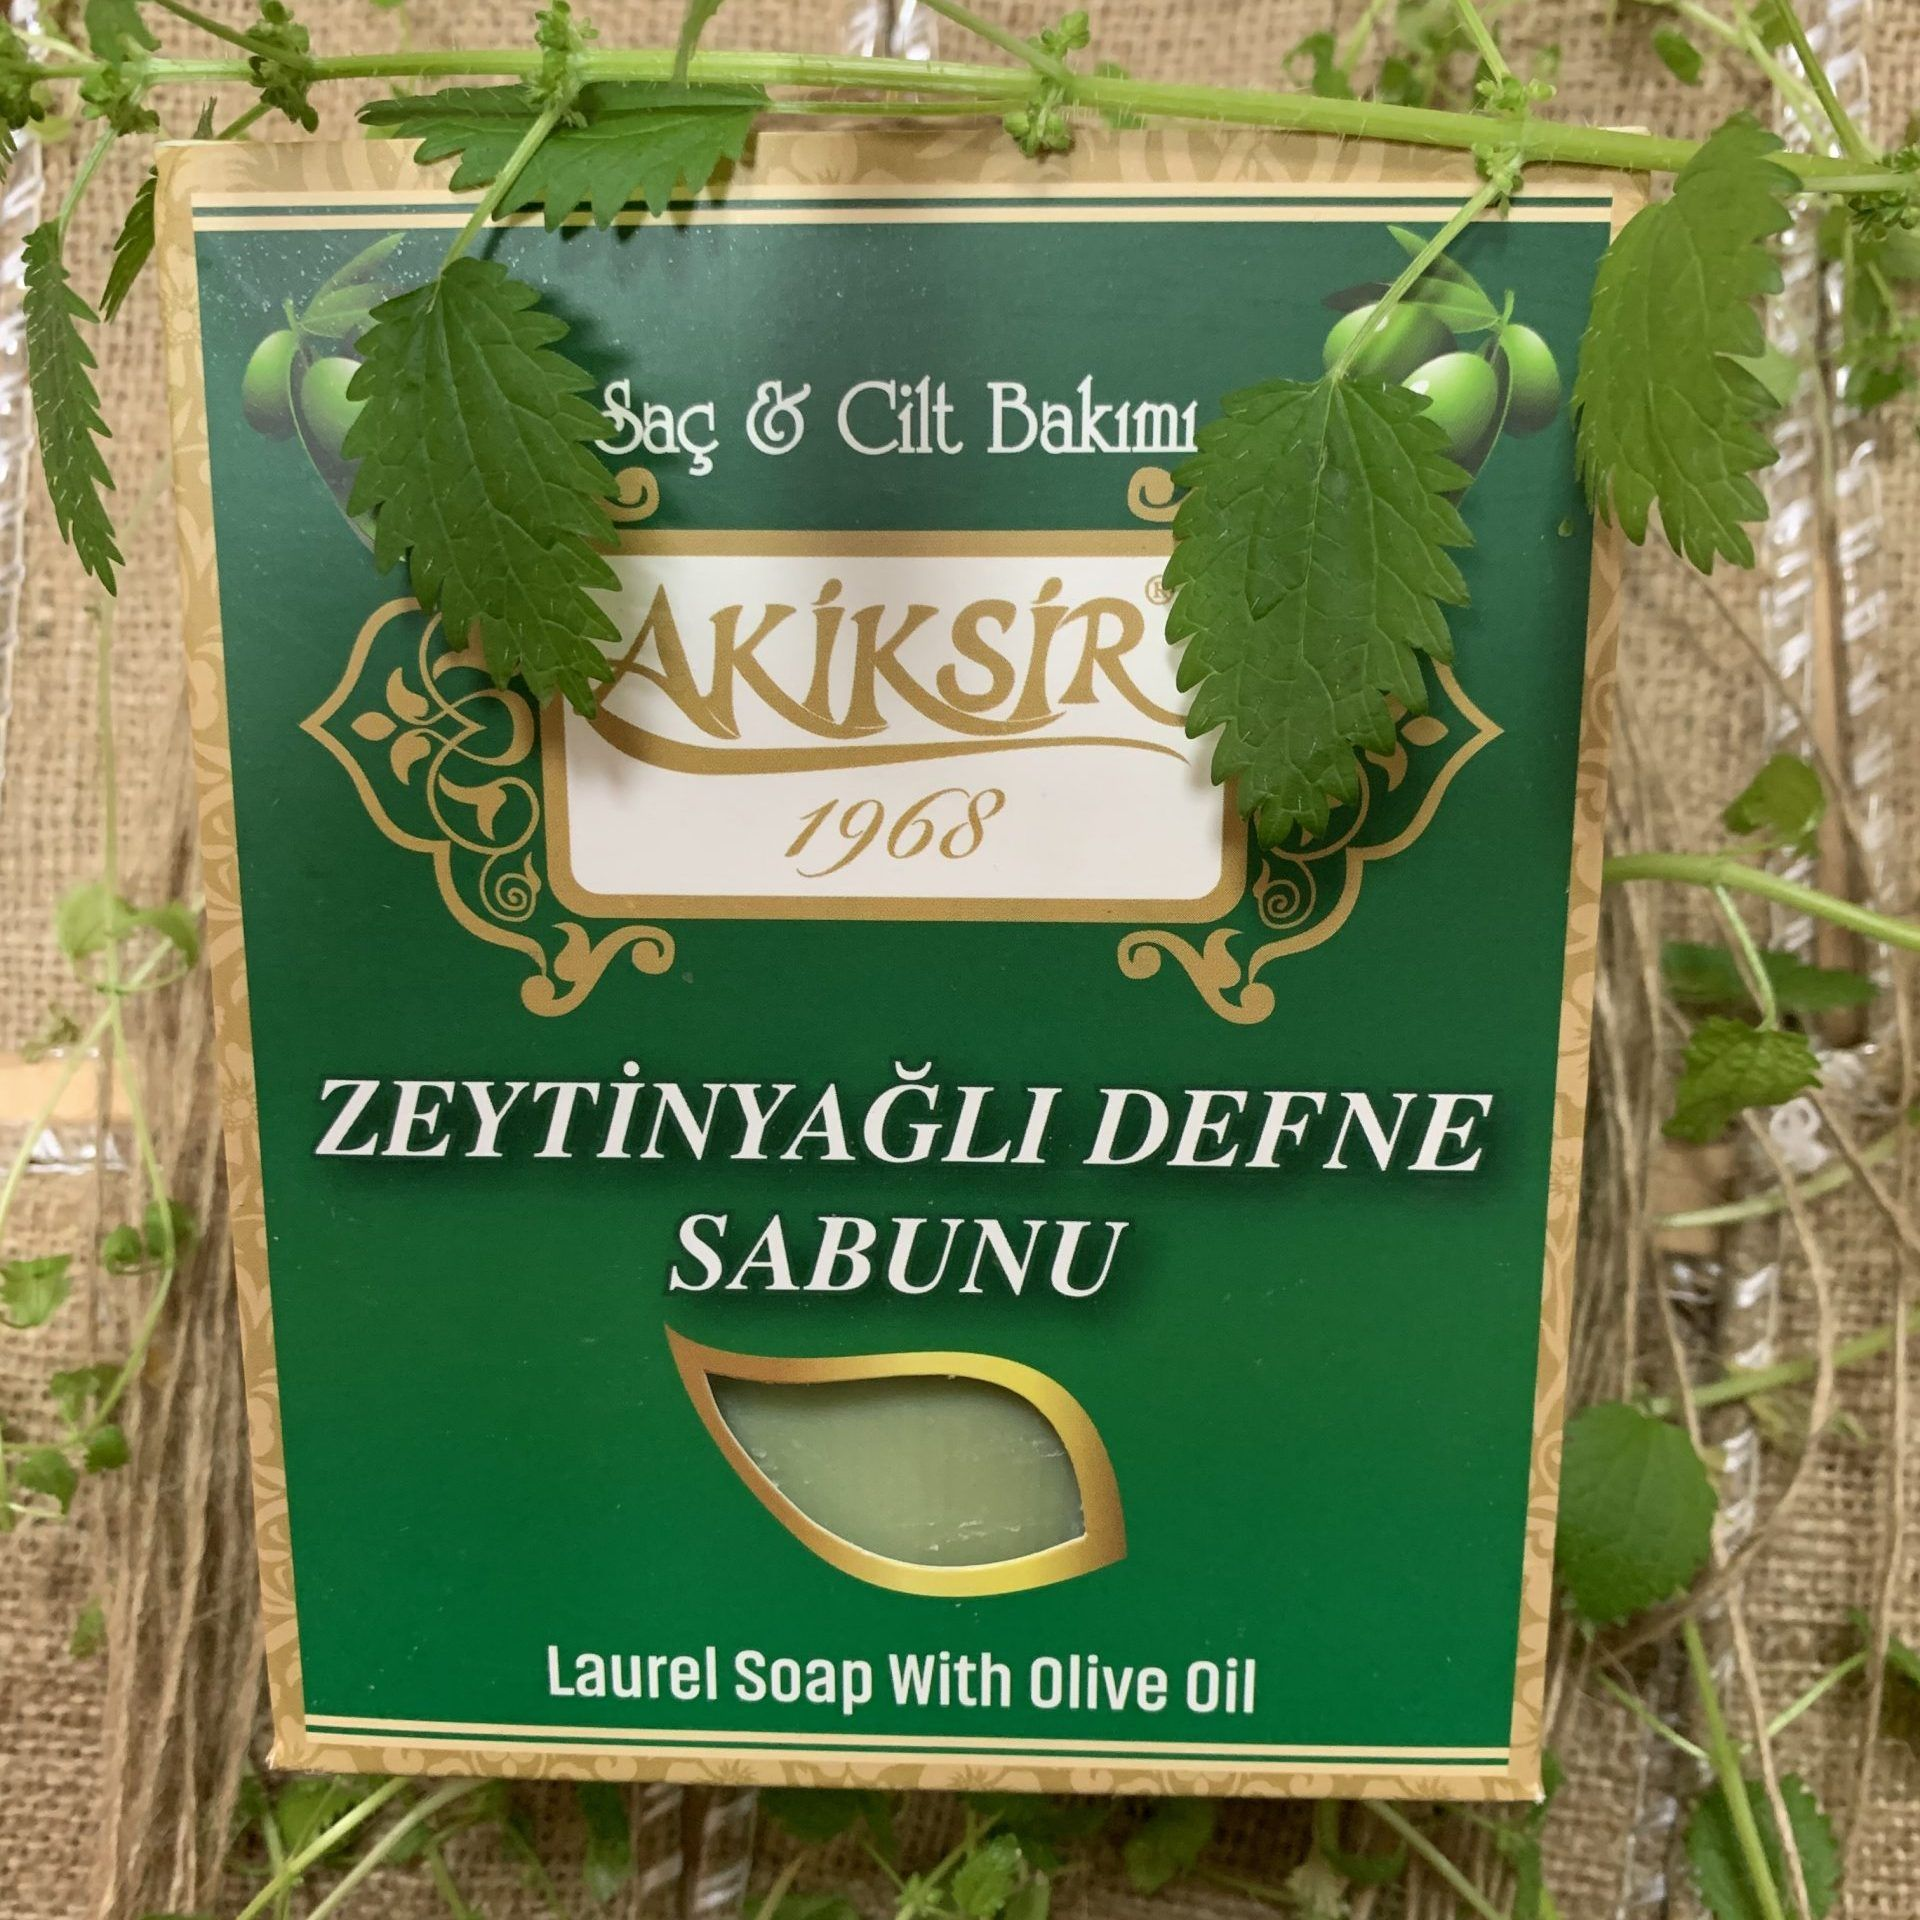 Set of natural bay soap with Akiksir olive oil, 6 pieces per pack